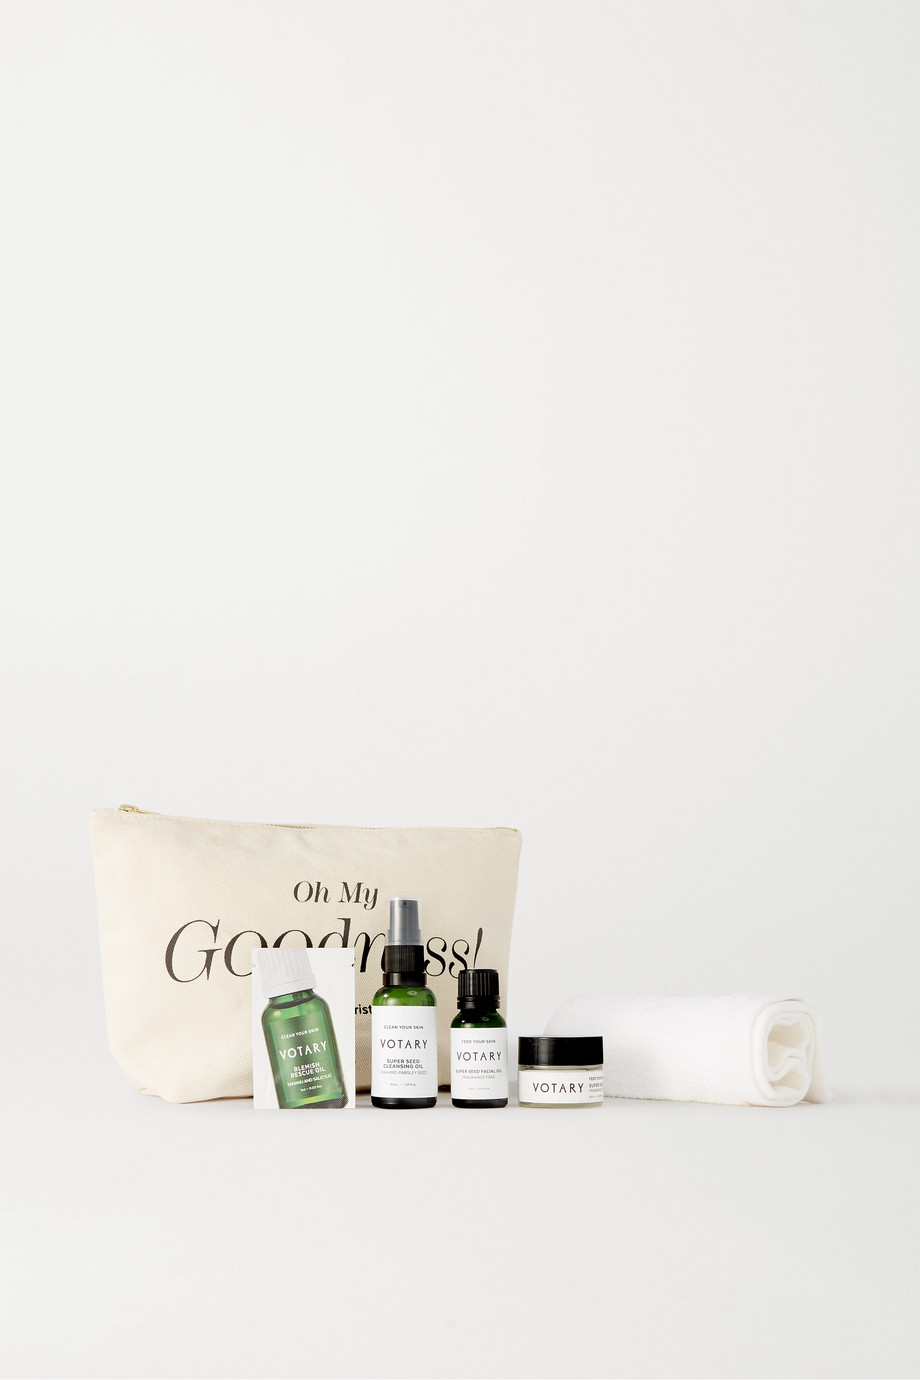 Votary Super Seed Experience Kit